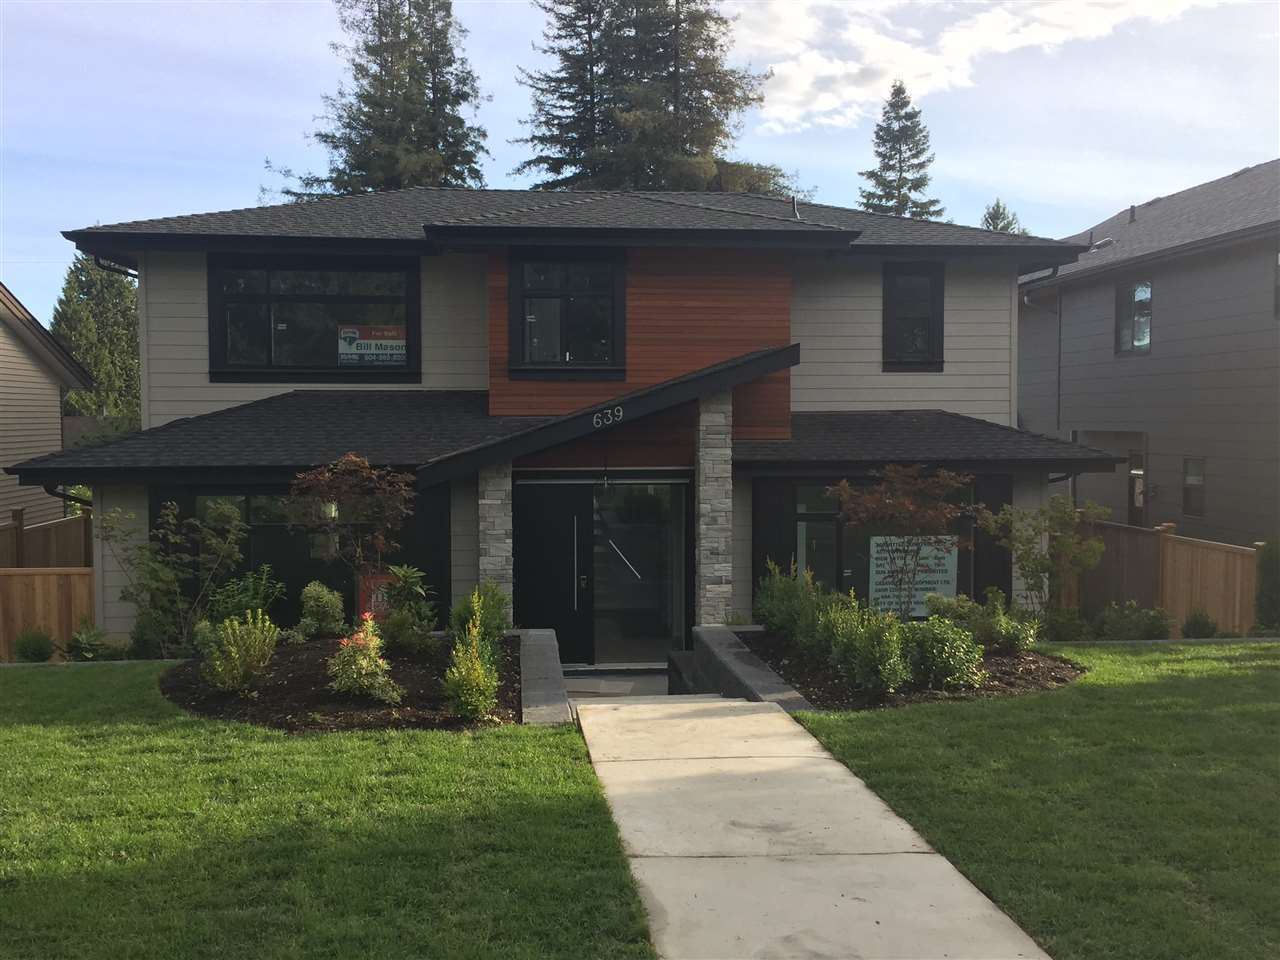 Detached at 639 E 6TH STREET, North Vancouver, British Columbia. Image 1